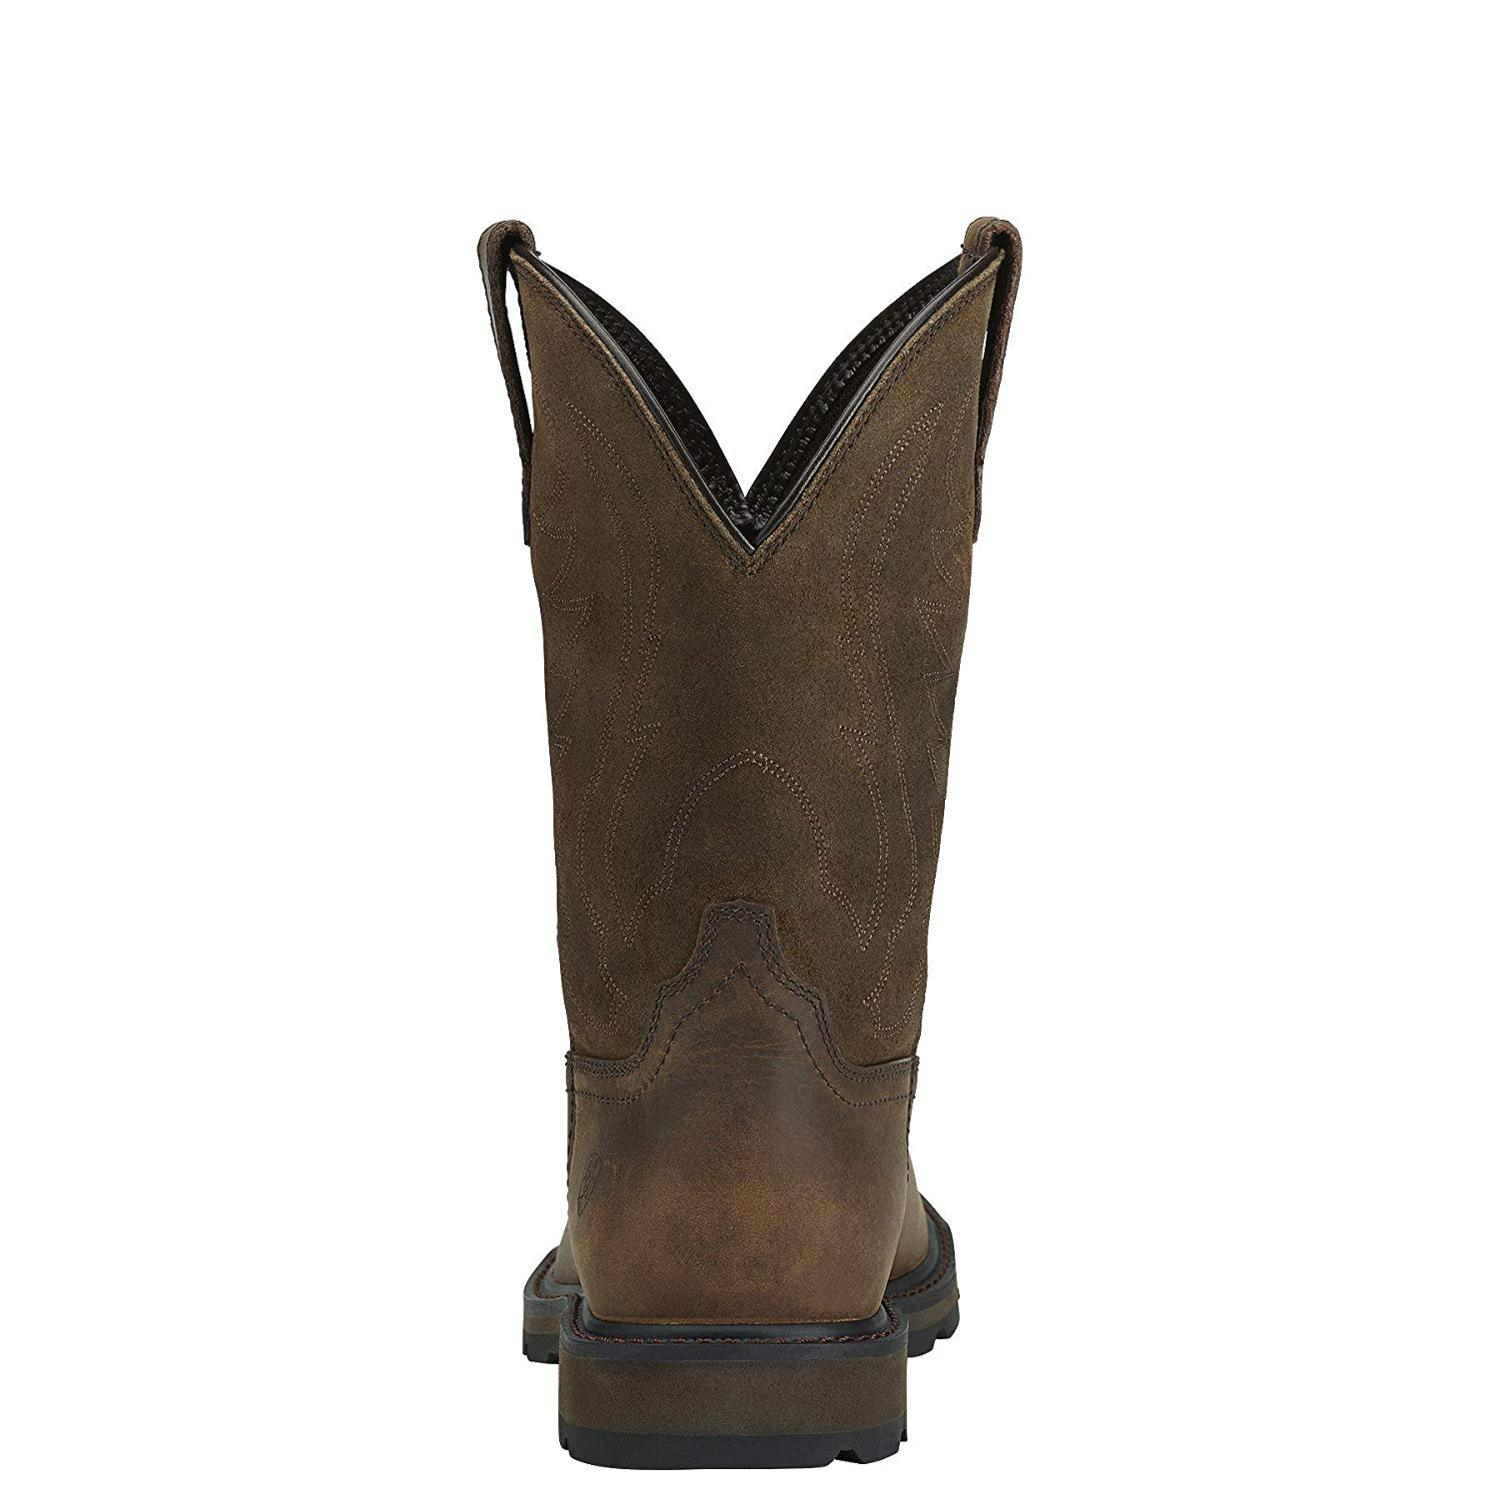 latest design sale retailer outlet online ARIAT Men's Groundbreaker Pull-on Work Boot, Brown/Htc Brown, Size ...